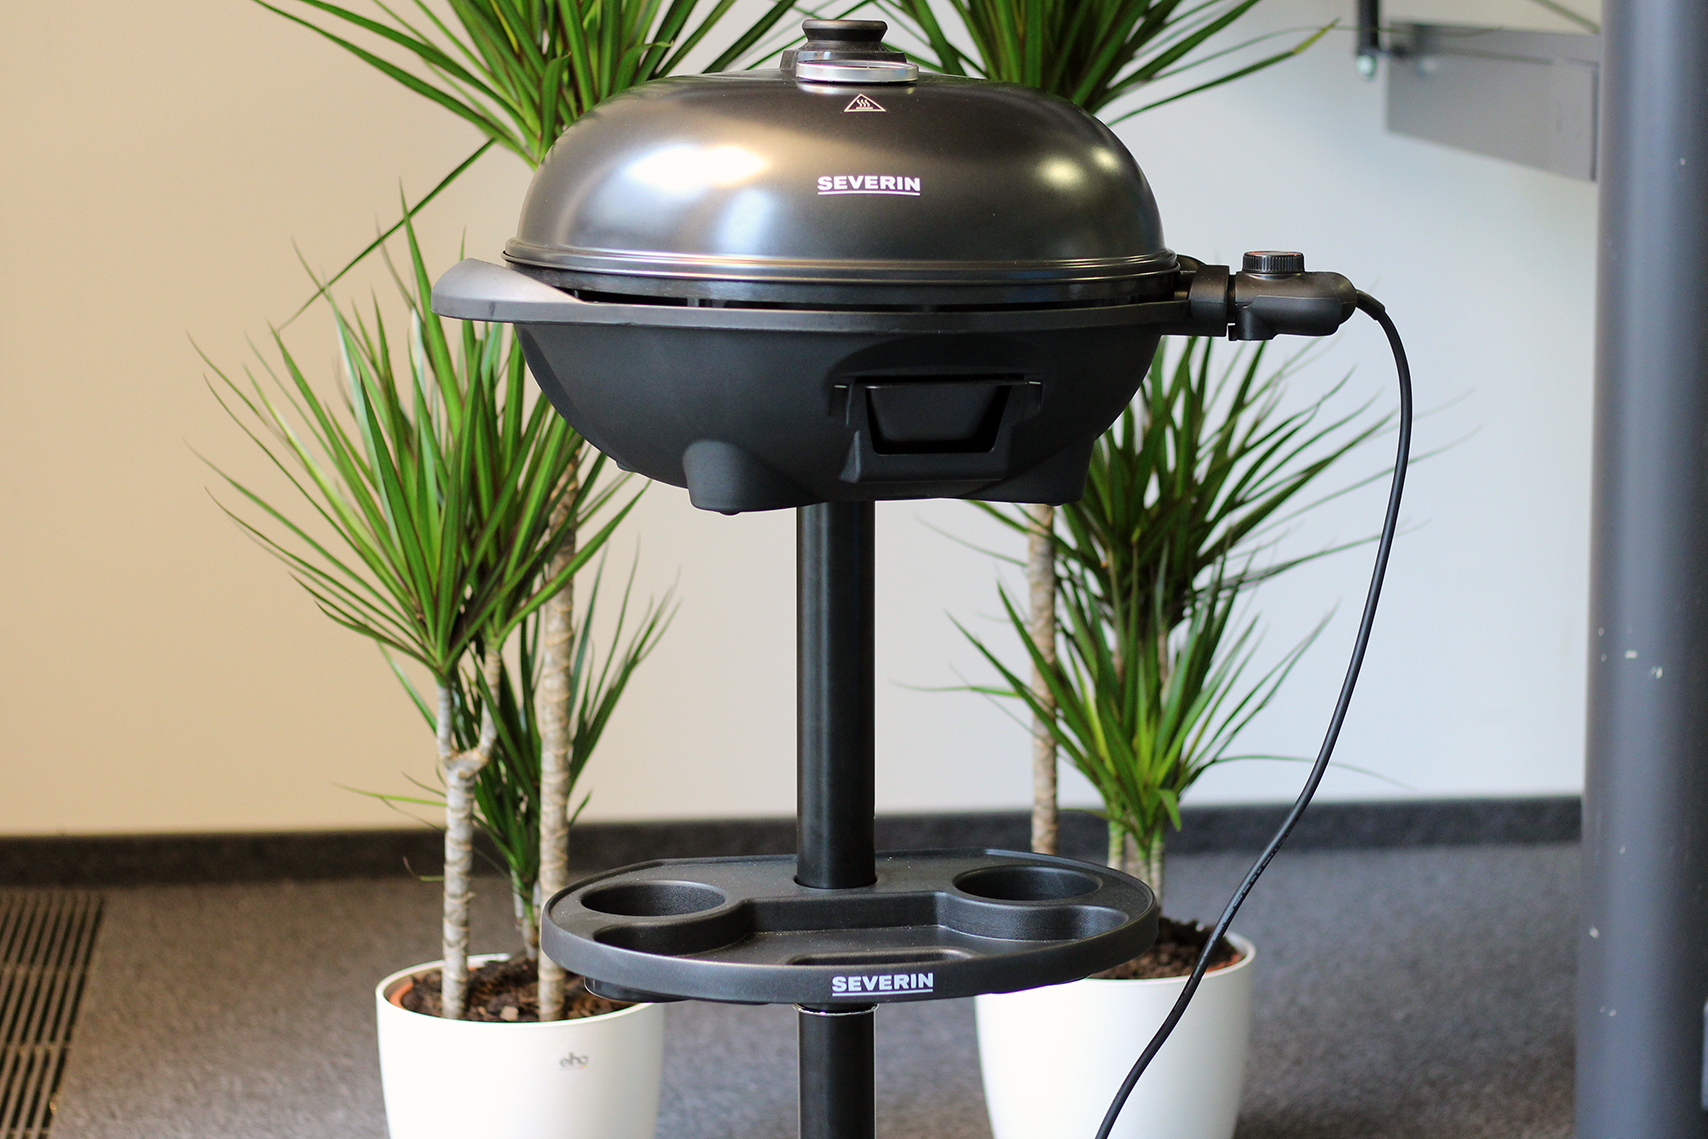 Severin Elektrogrill Gebraucht : Severin barbecue grill pg youtube